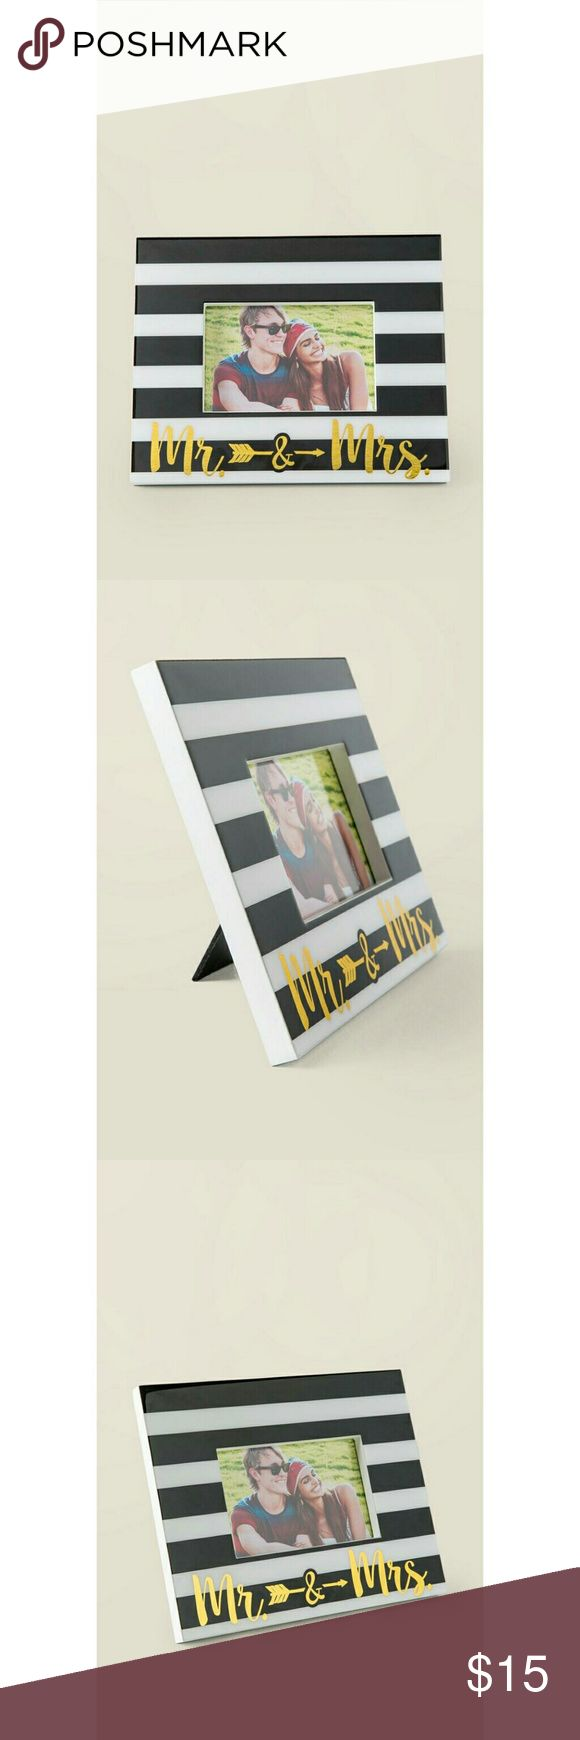 MR. & MRS. ARROW STRIPED FRAME - 10 inches by 8 inches - Fits a 4 inch by 6 inch photo - Black and white striped design - Gold font - Stand on back for propping up - Lacquer coating on front - Francesca's exclusive - Imported Francesca's Collections Other